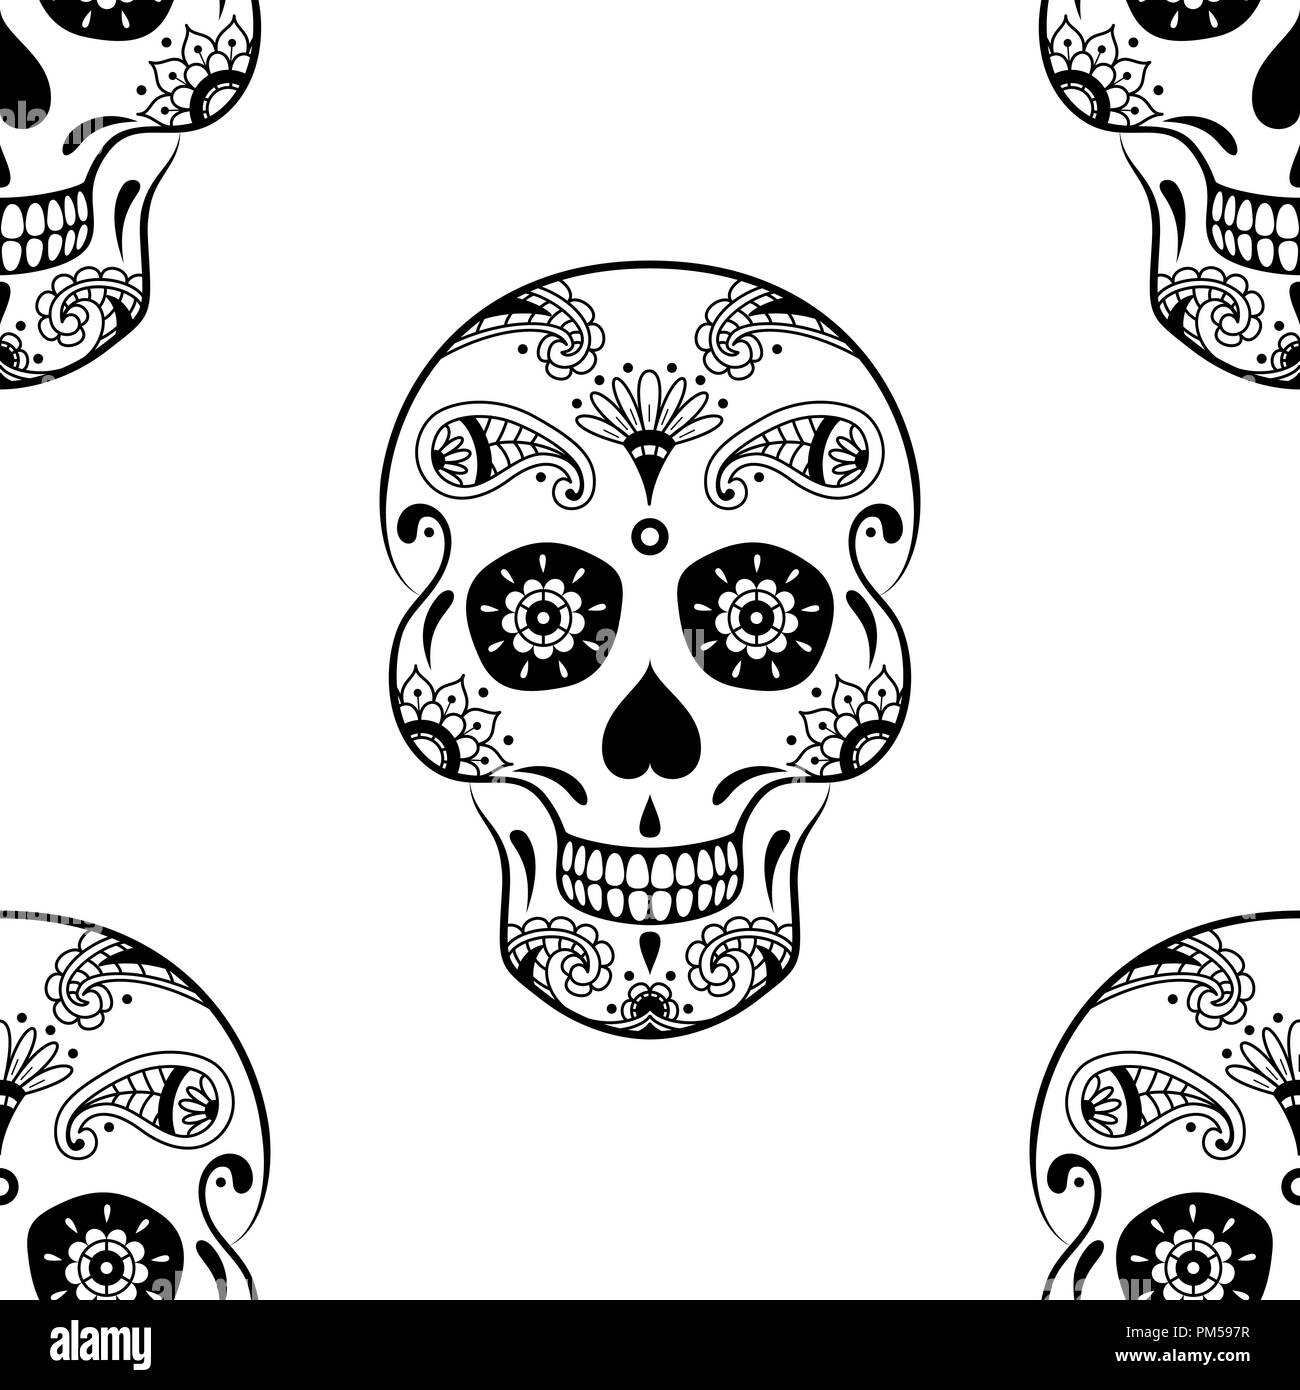 vector seamless pattern of black sugar skull with doodle floral pattern on white background coloring page book for mexican day of the dead PM597R